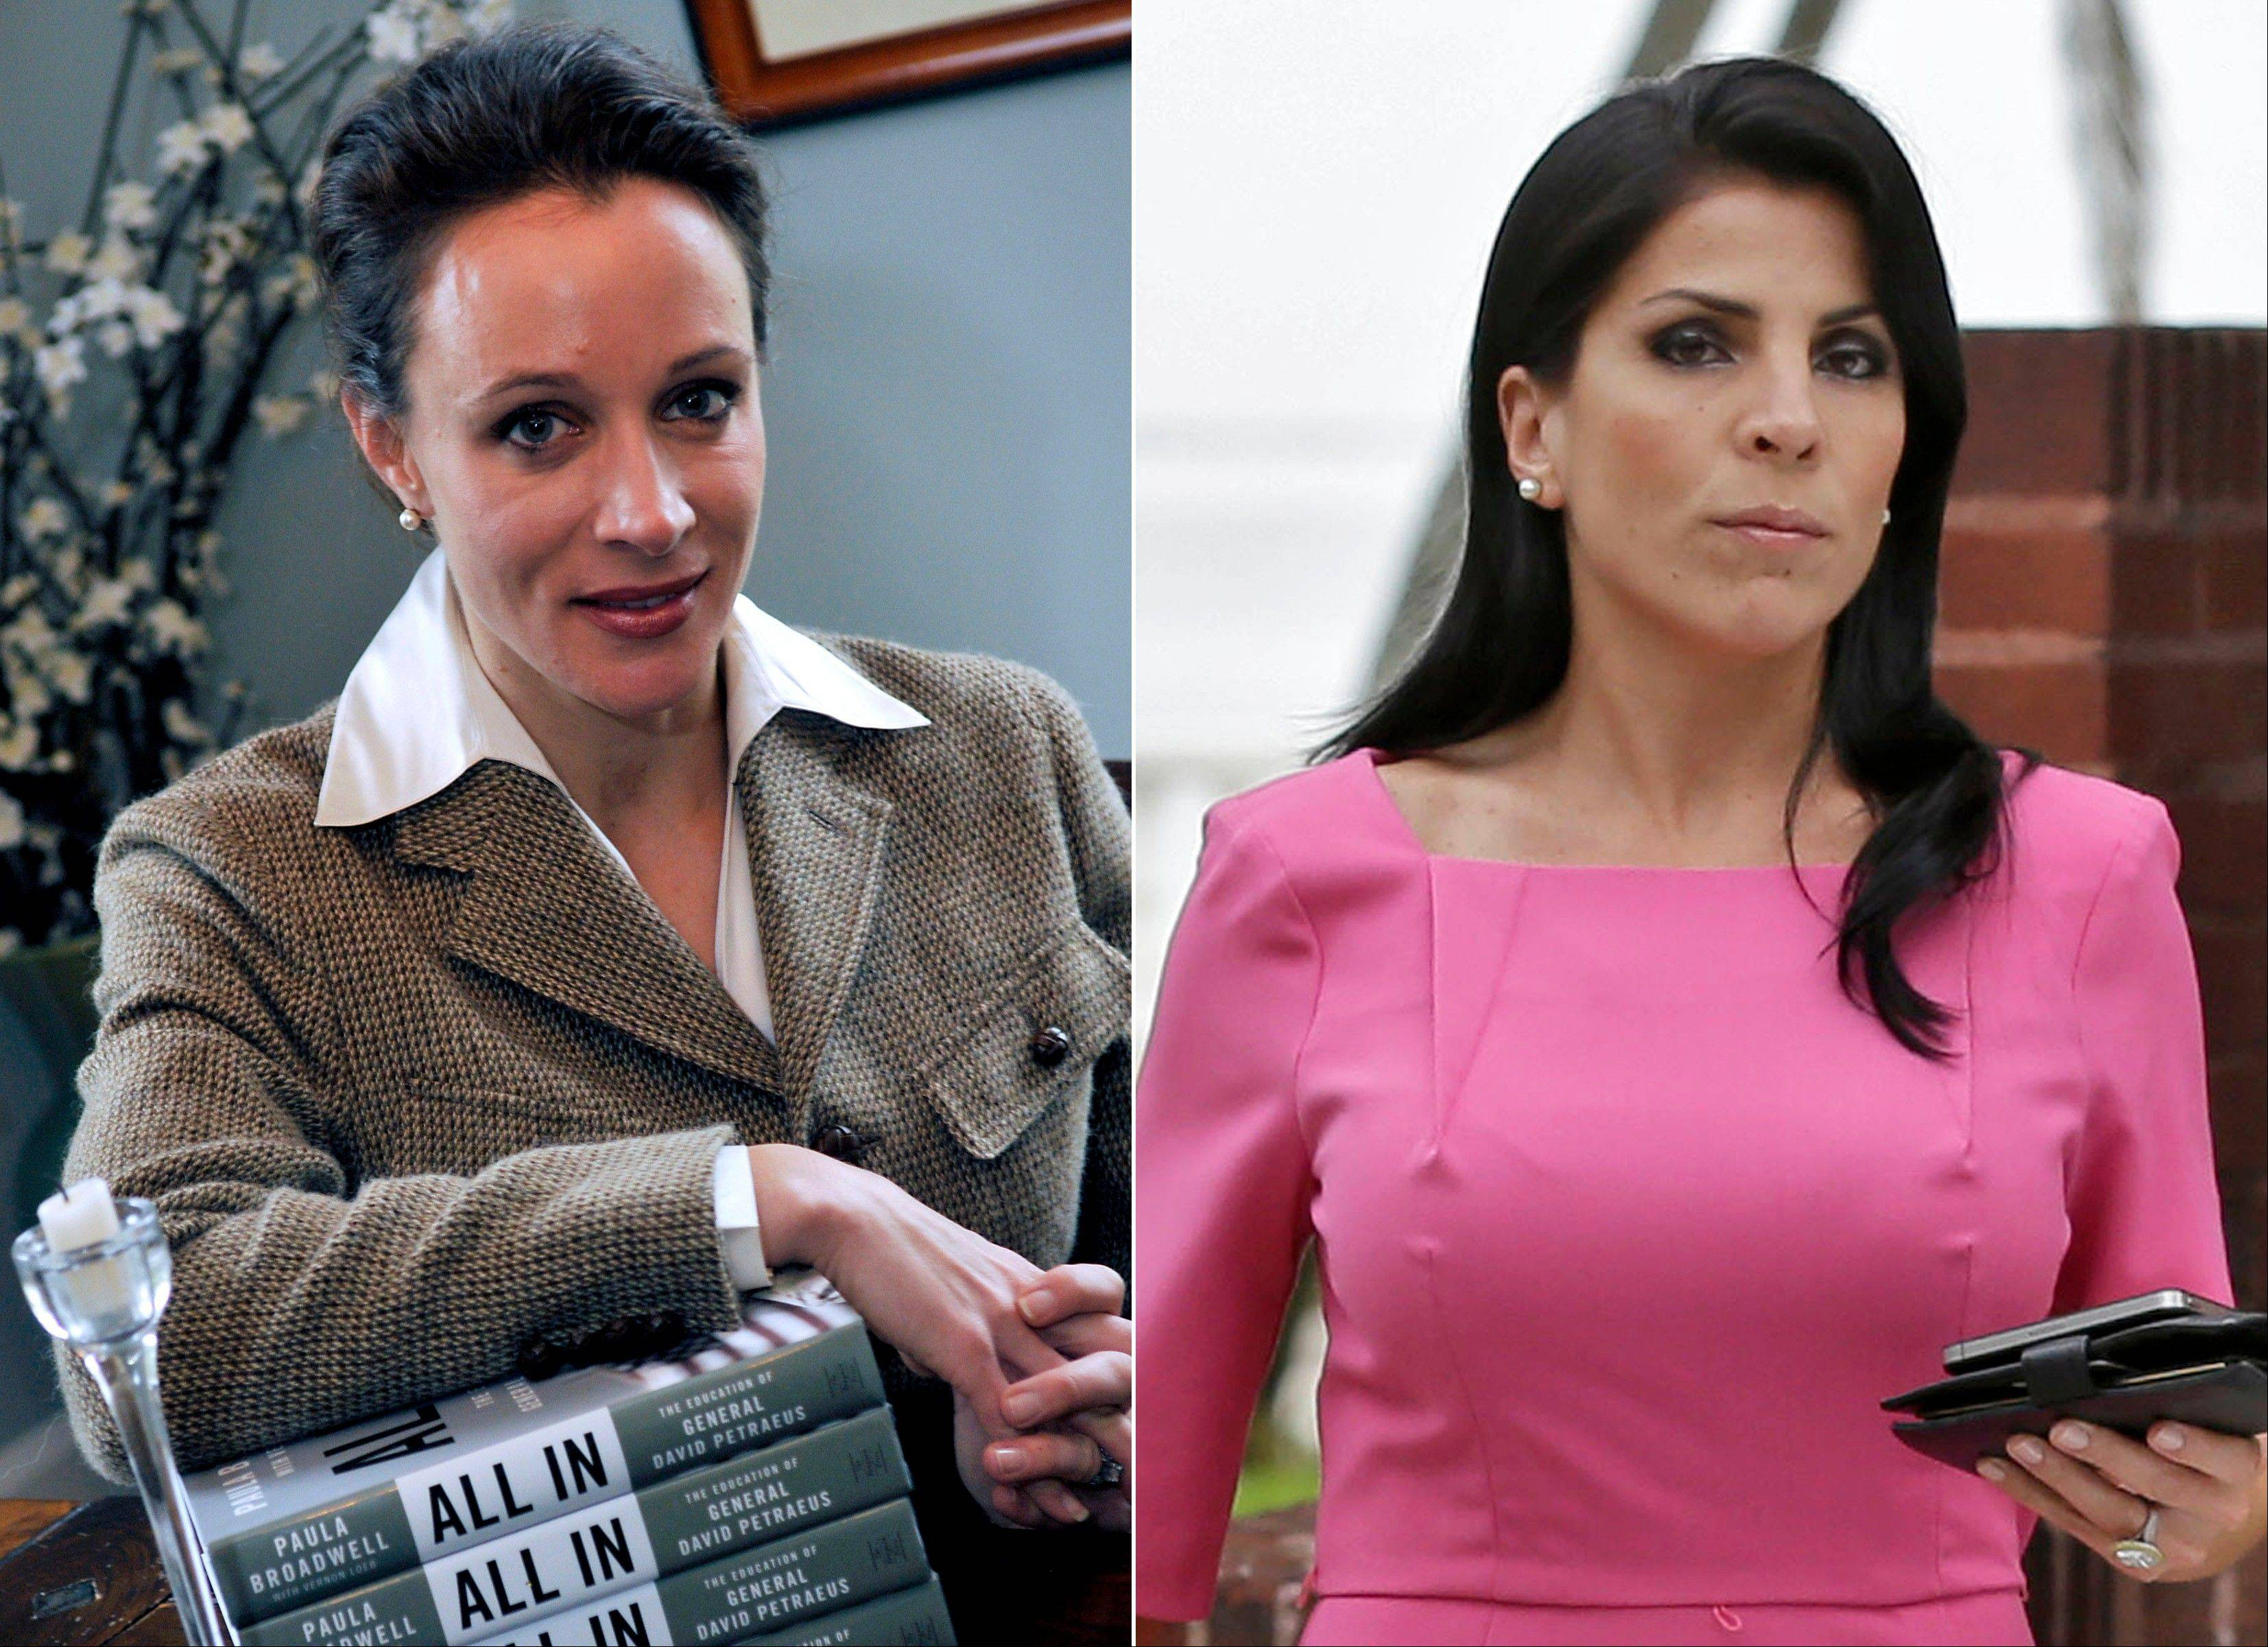 This combo made from file photos shows Gen. David Petraeus' biographer and paramour Paula Broadwell, left, and Florida socialite Jill Kelley. Broadwell and Kelley, the two women at the center of David Petraeus' downfall as CIA director, visited the White House se